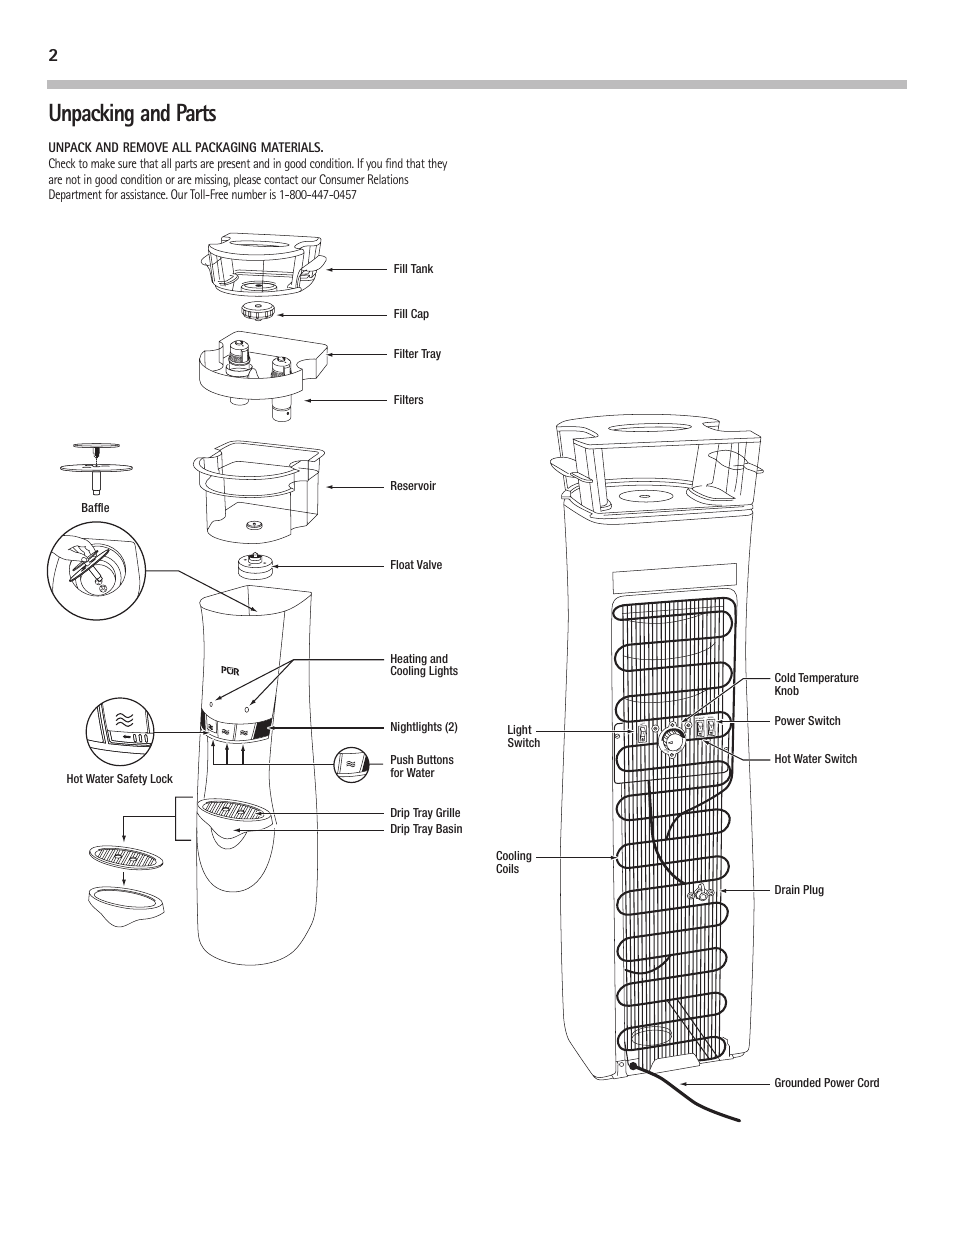 hight resolution of unpacking and parts pur water purification products water cooler pur300 user manual page 4 28